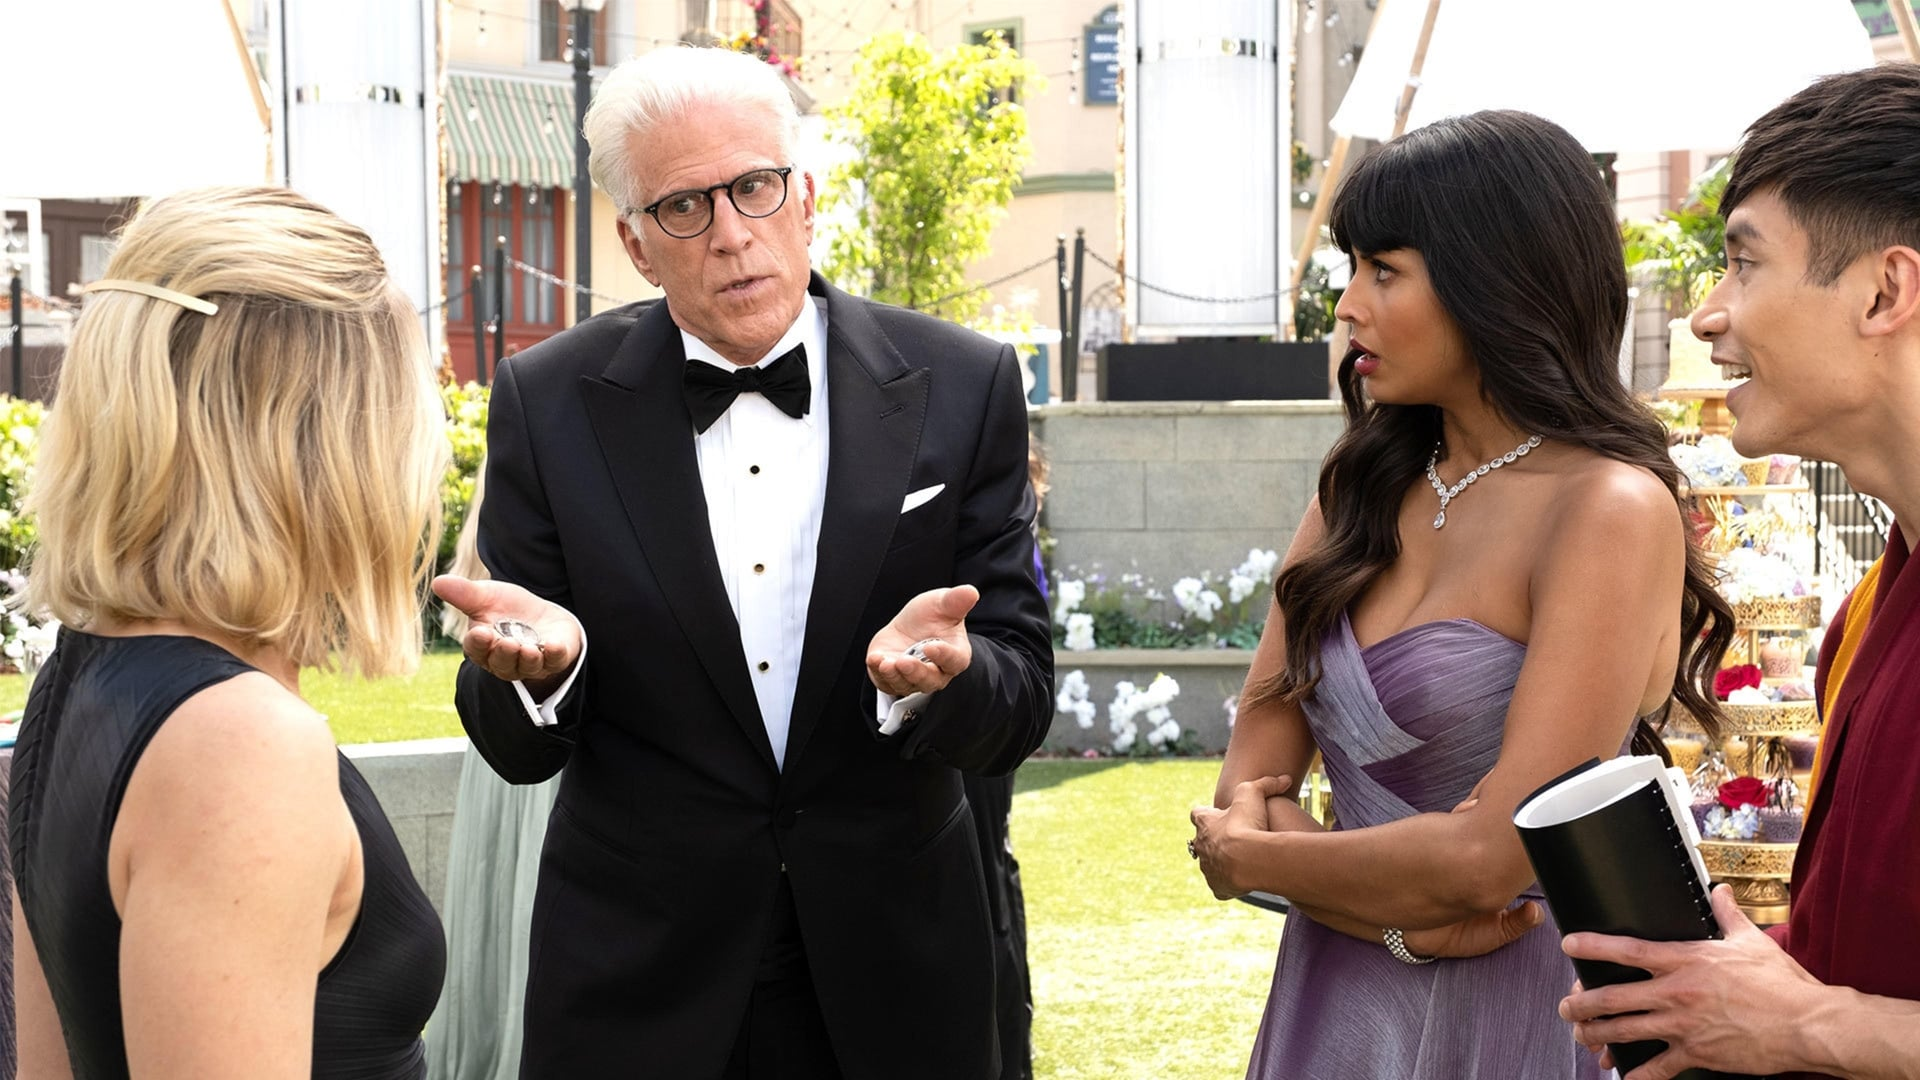 The Good Place - Season 4 Episode 7 : Help Is Other People